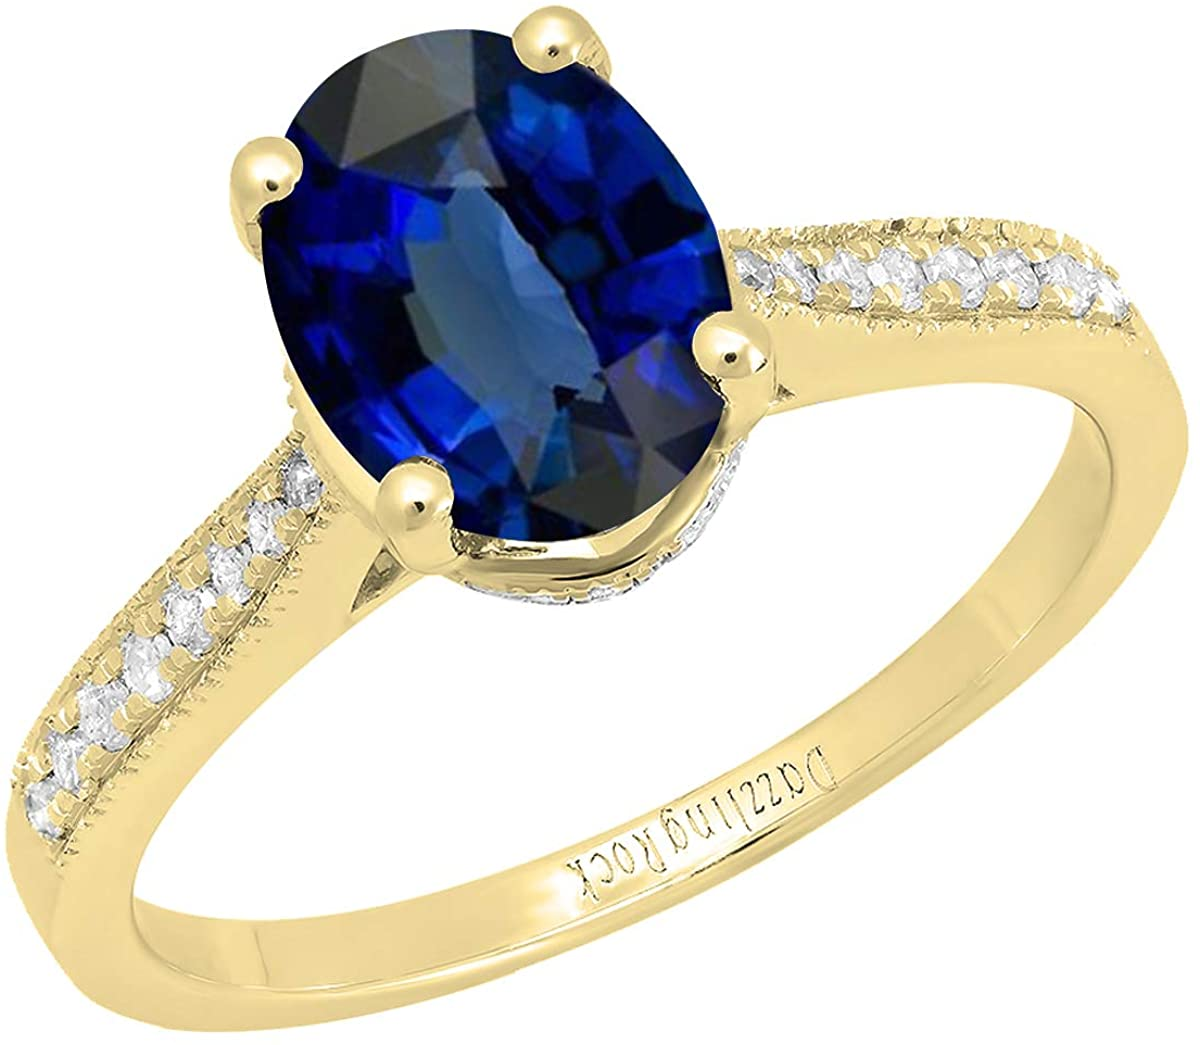 Dazzlingrock Collection 9X7 MM Oval Lab Created Gemstone and Round Natural Diamond Ladies Engagement Ring, 14K Yellow Gold